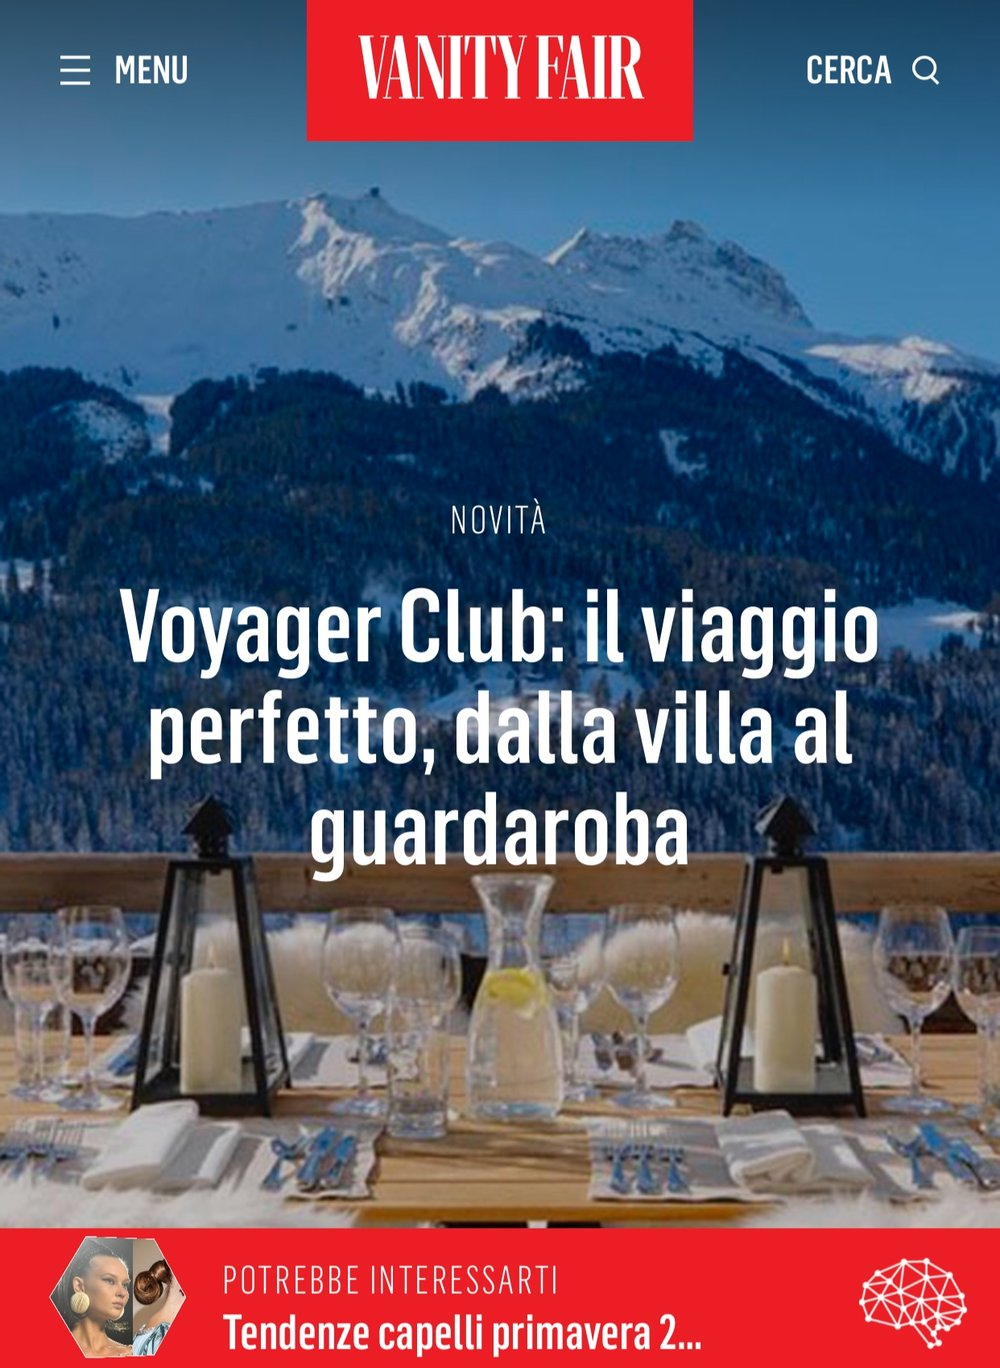 Vanity Fair Italia- Press- Voyager Club